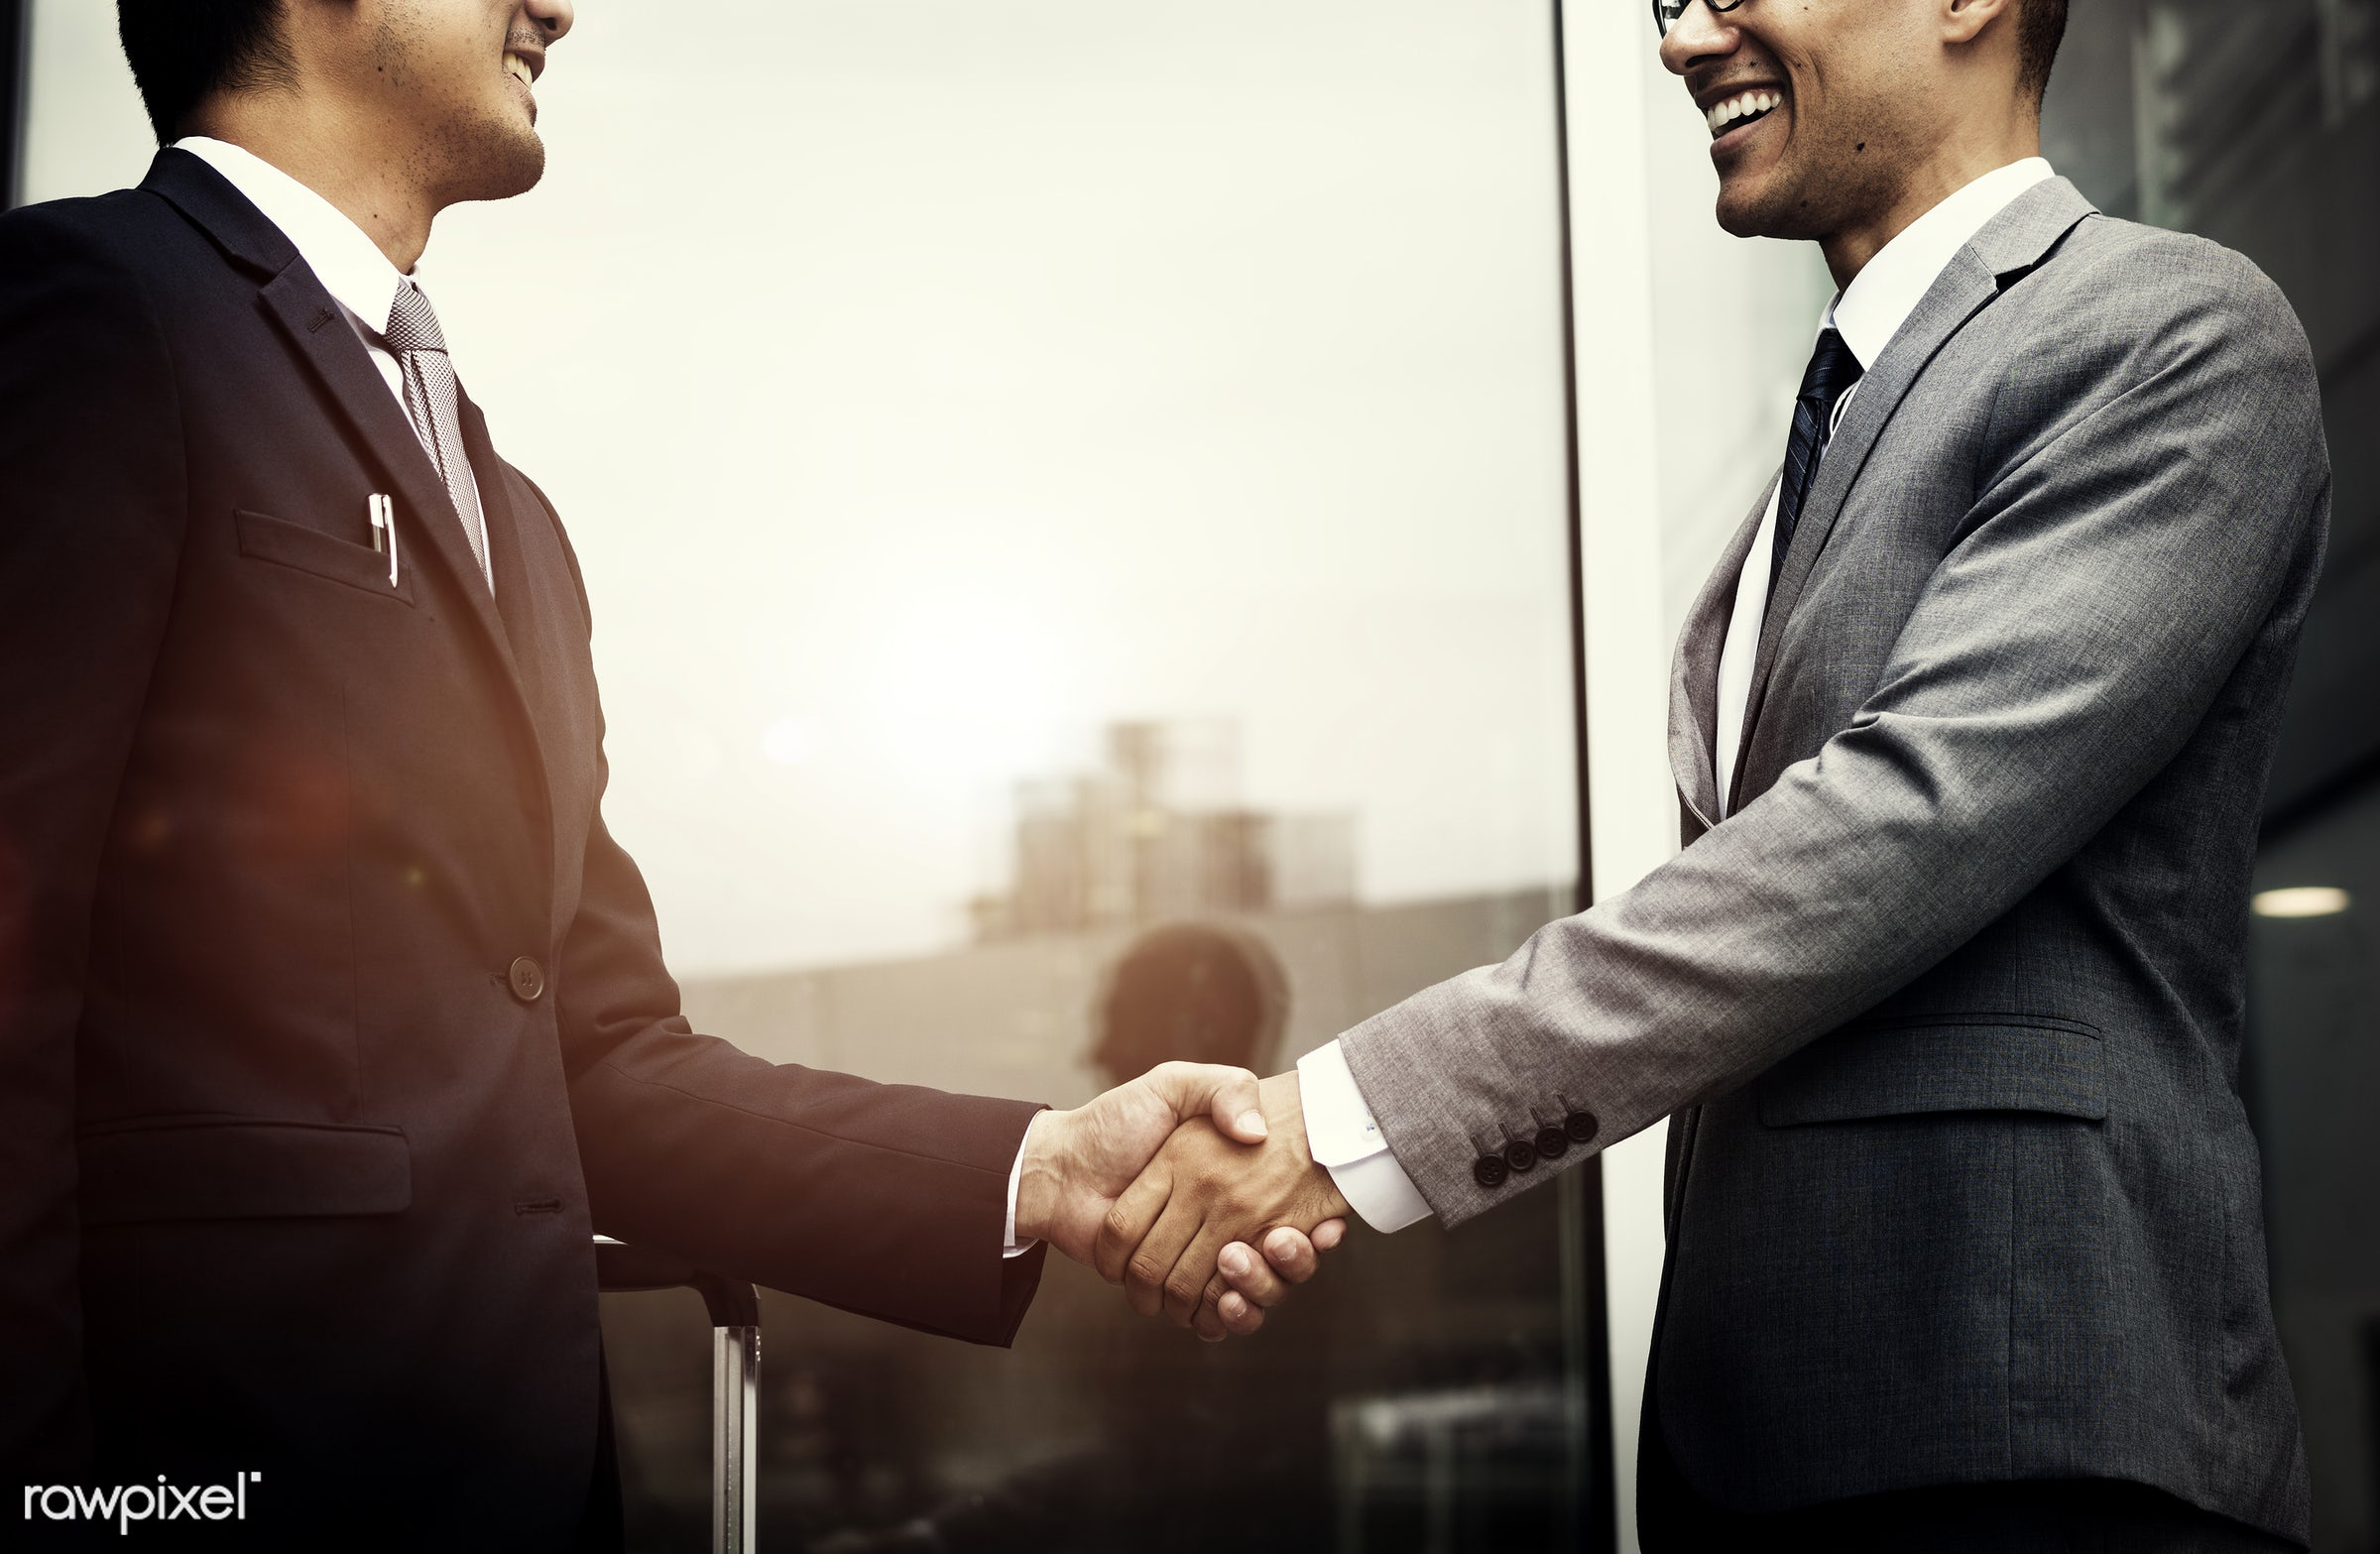 Corporate businessmen shaking hands - business, handshake, deal, career, work, corporate, businessman, manager,...